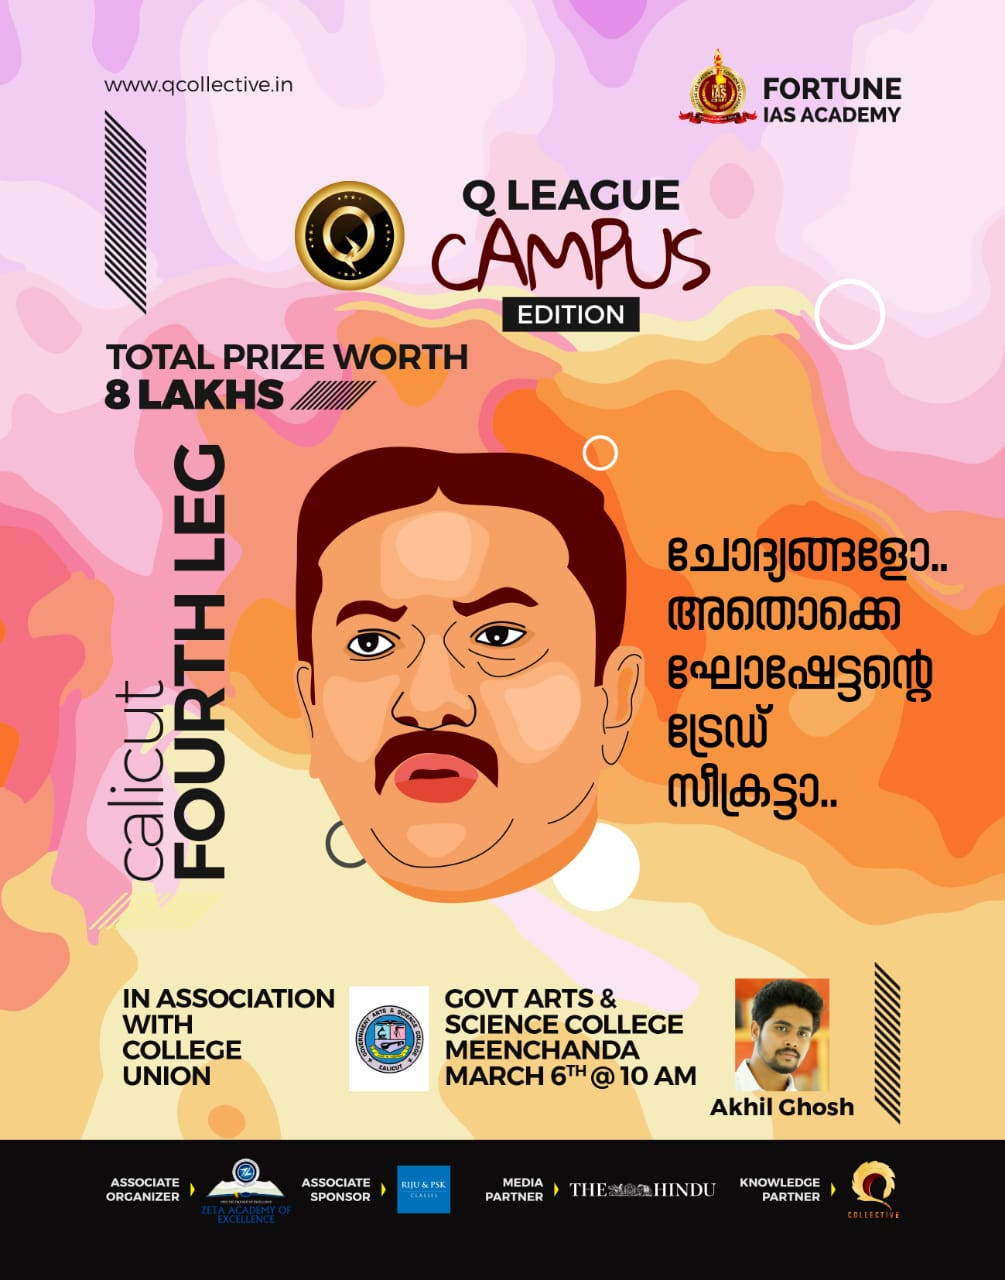 Q League Campus Edition Kozhikode Fourth Leg